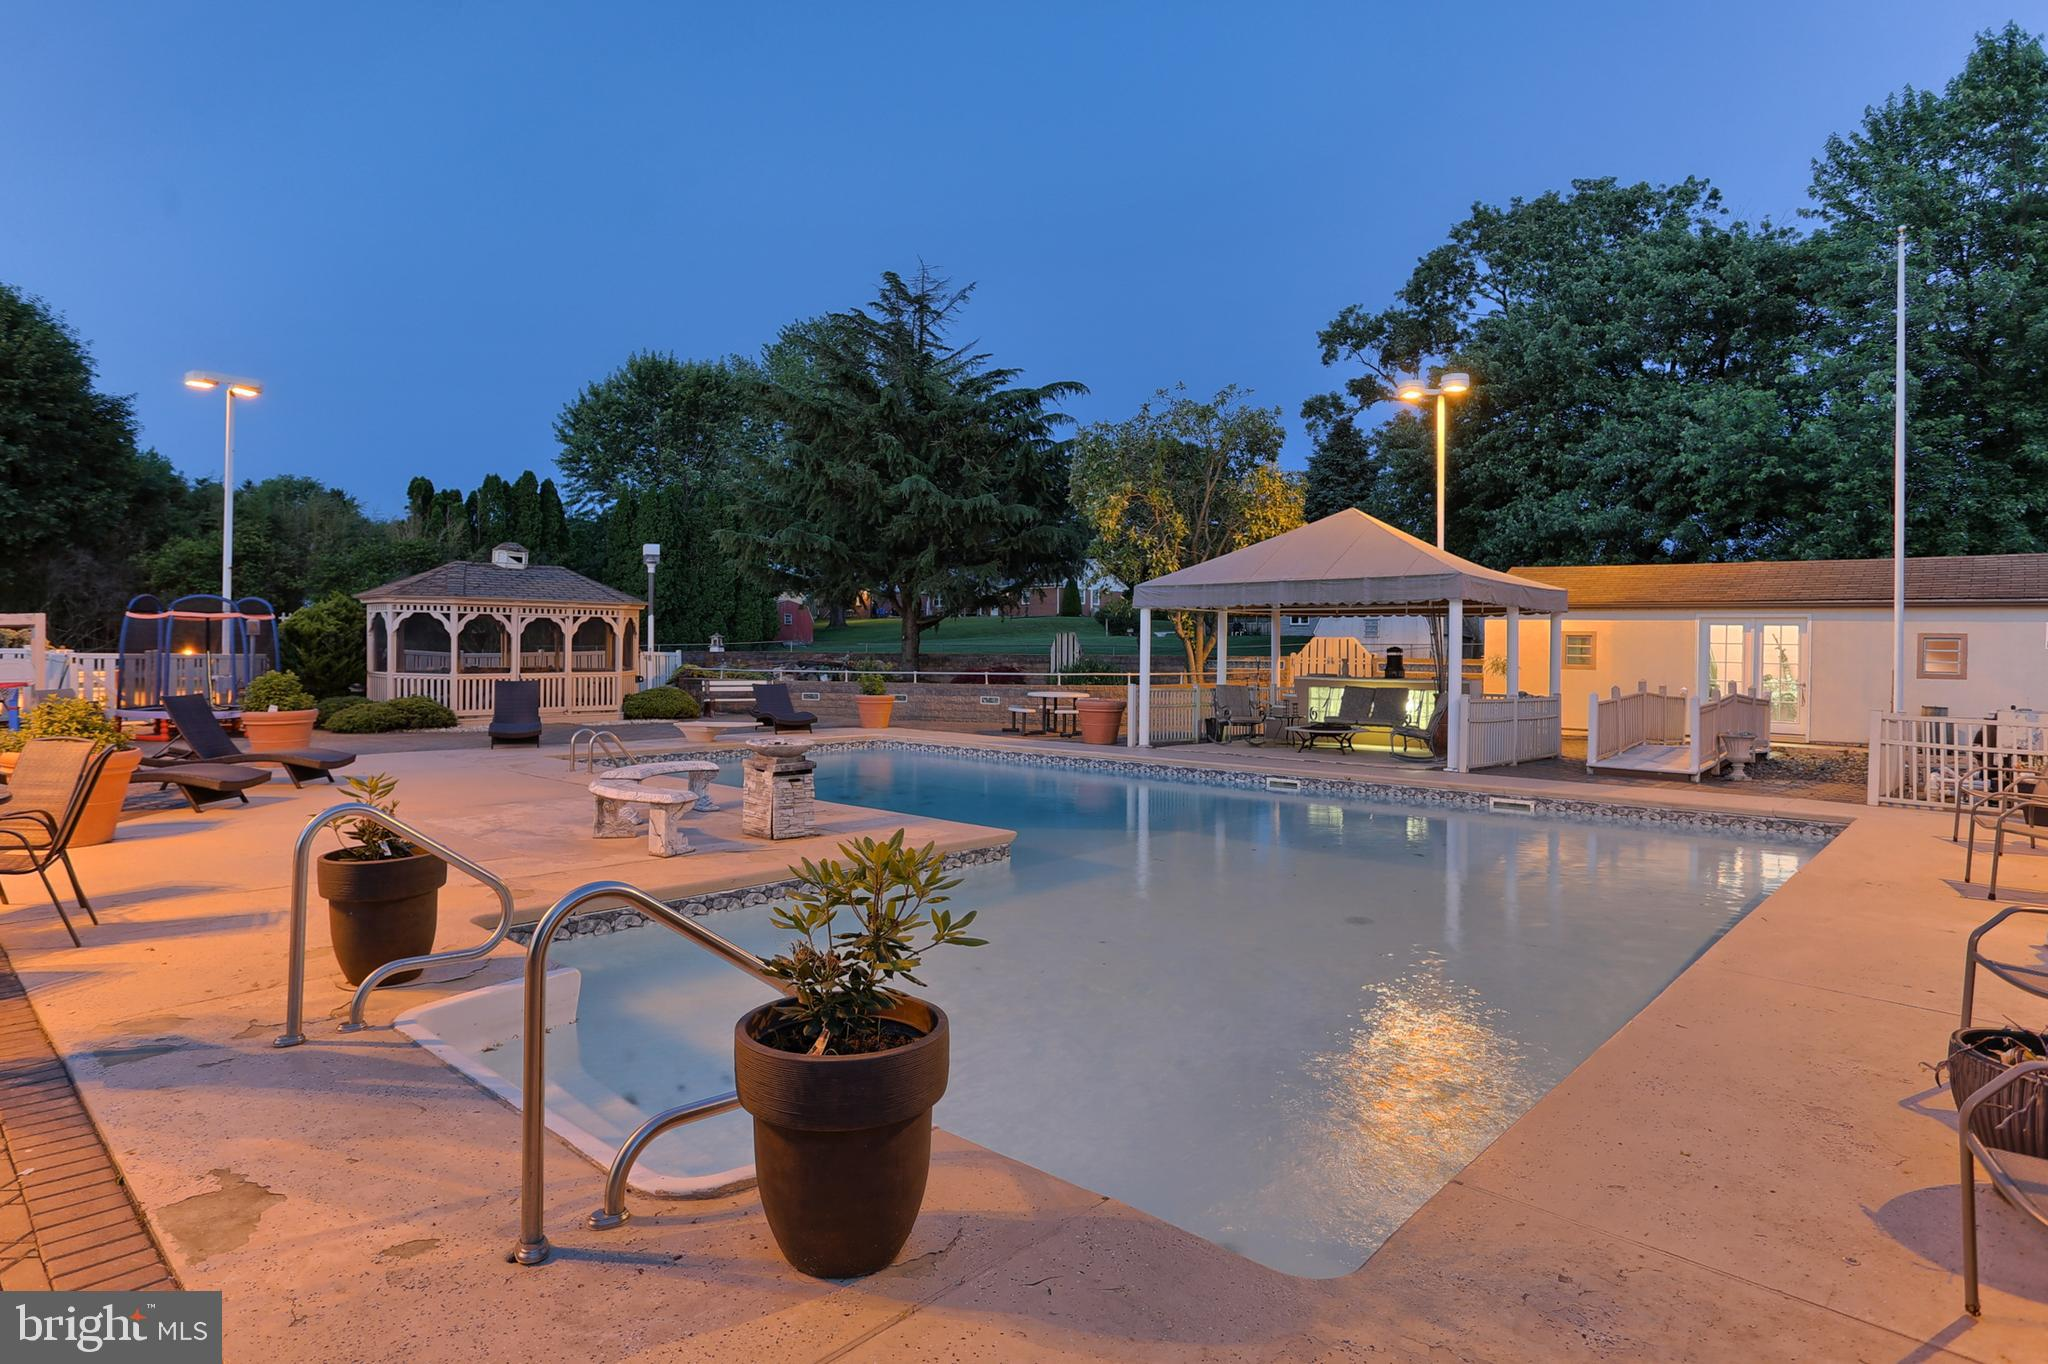 34' x 44' in ground swimming pool